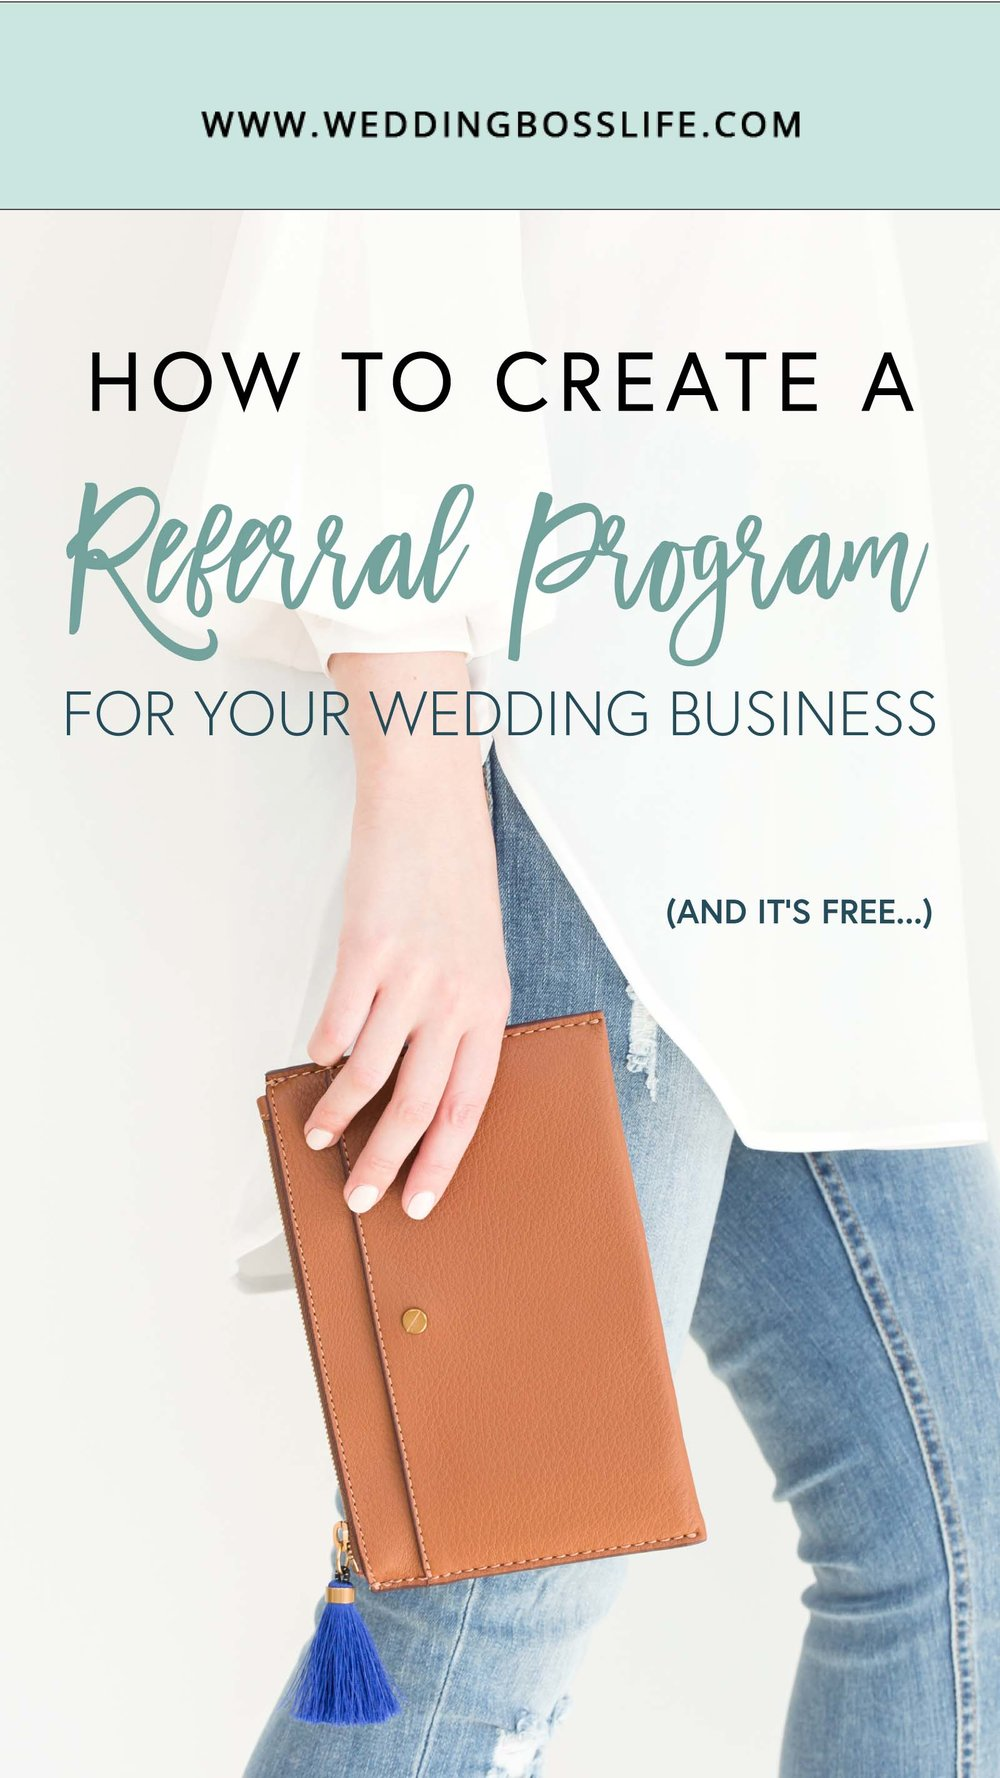 Creating a Referral Program for Your Wedding Business